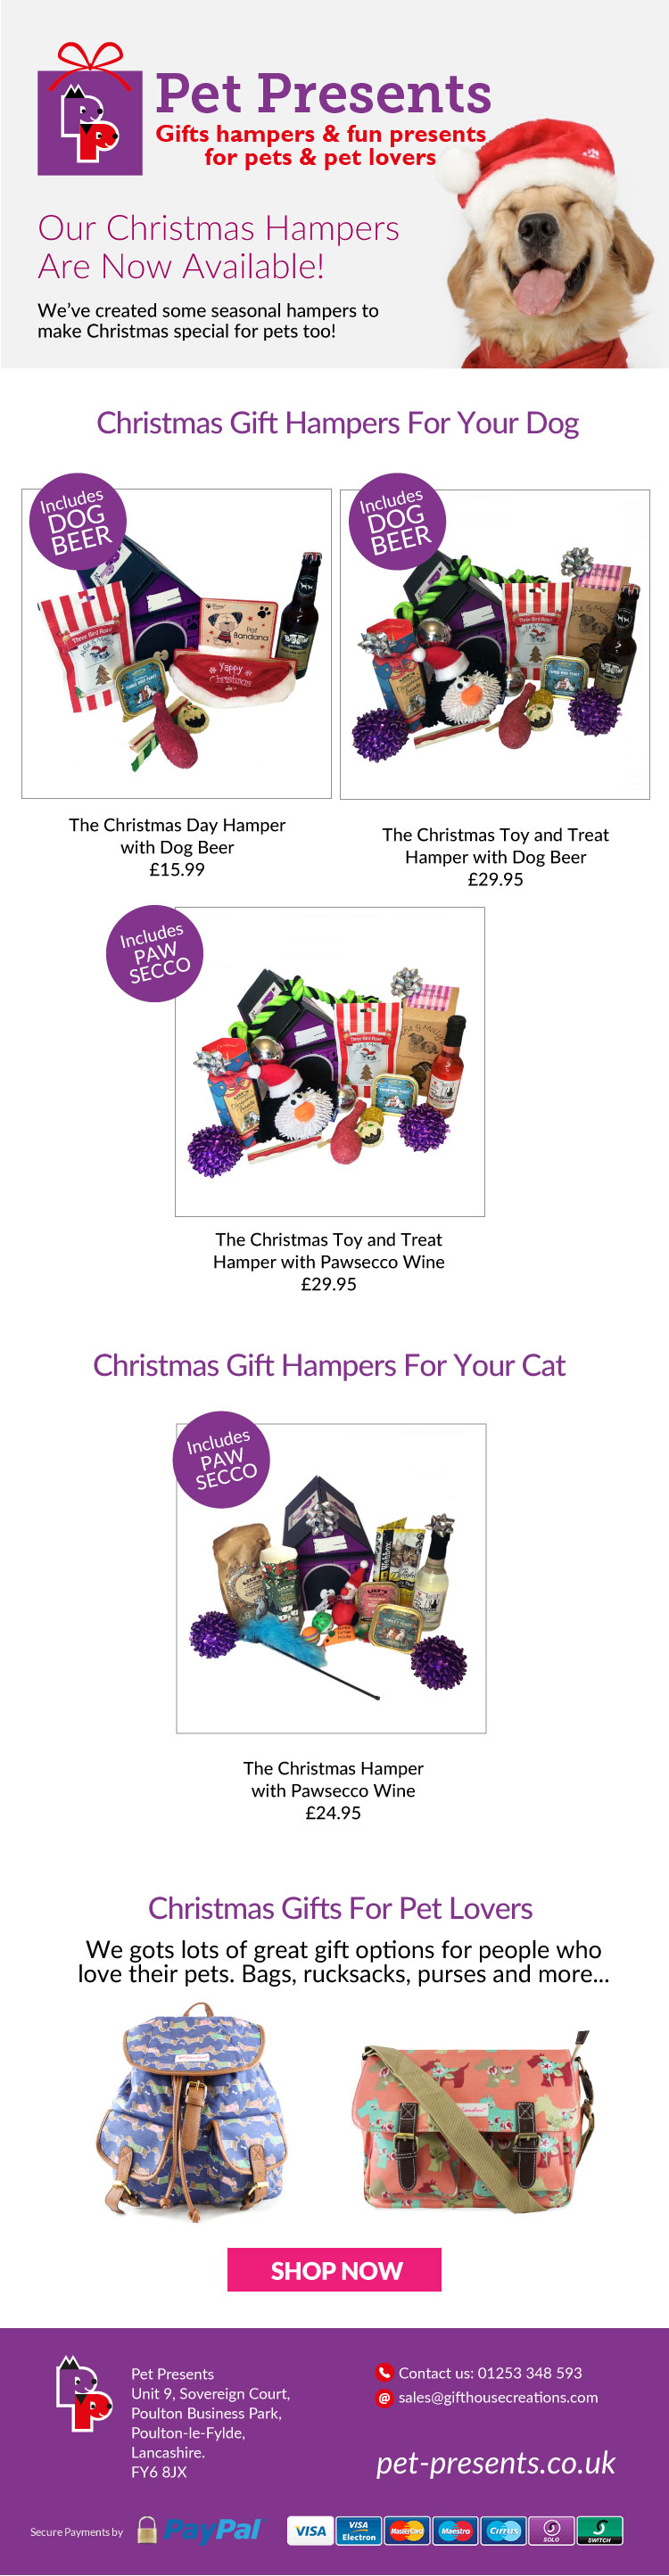 The Christmas Day Hamper For Dogs with Dog Beer.